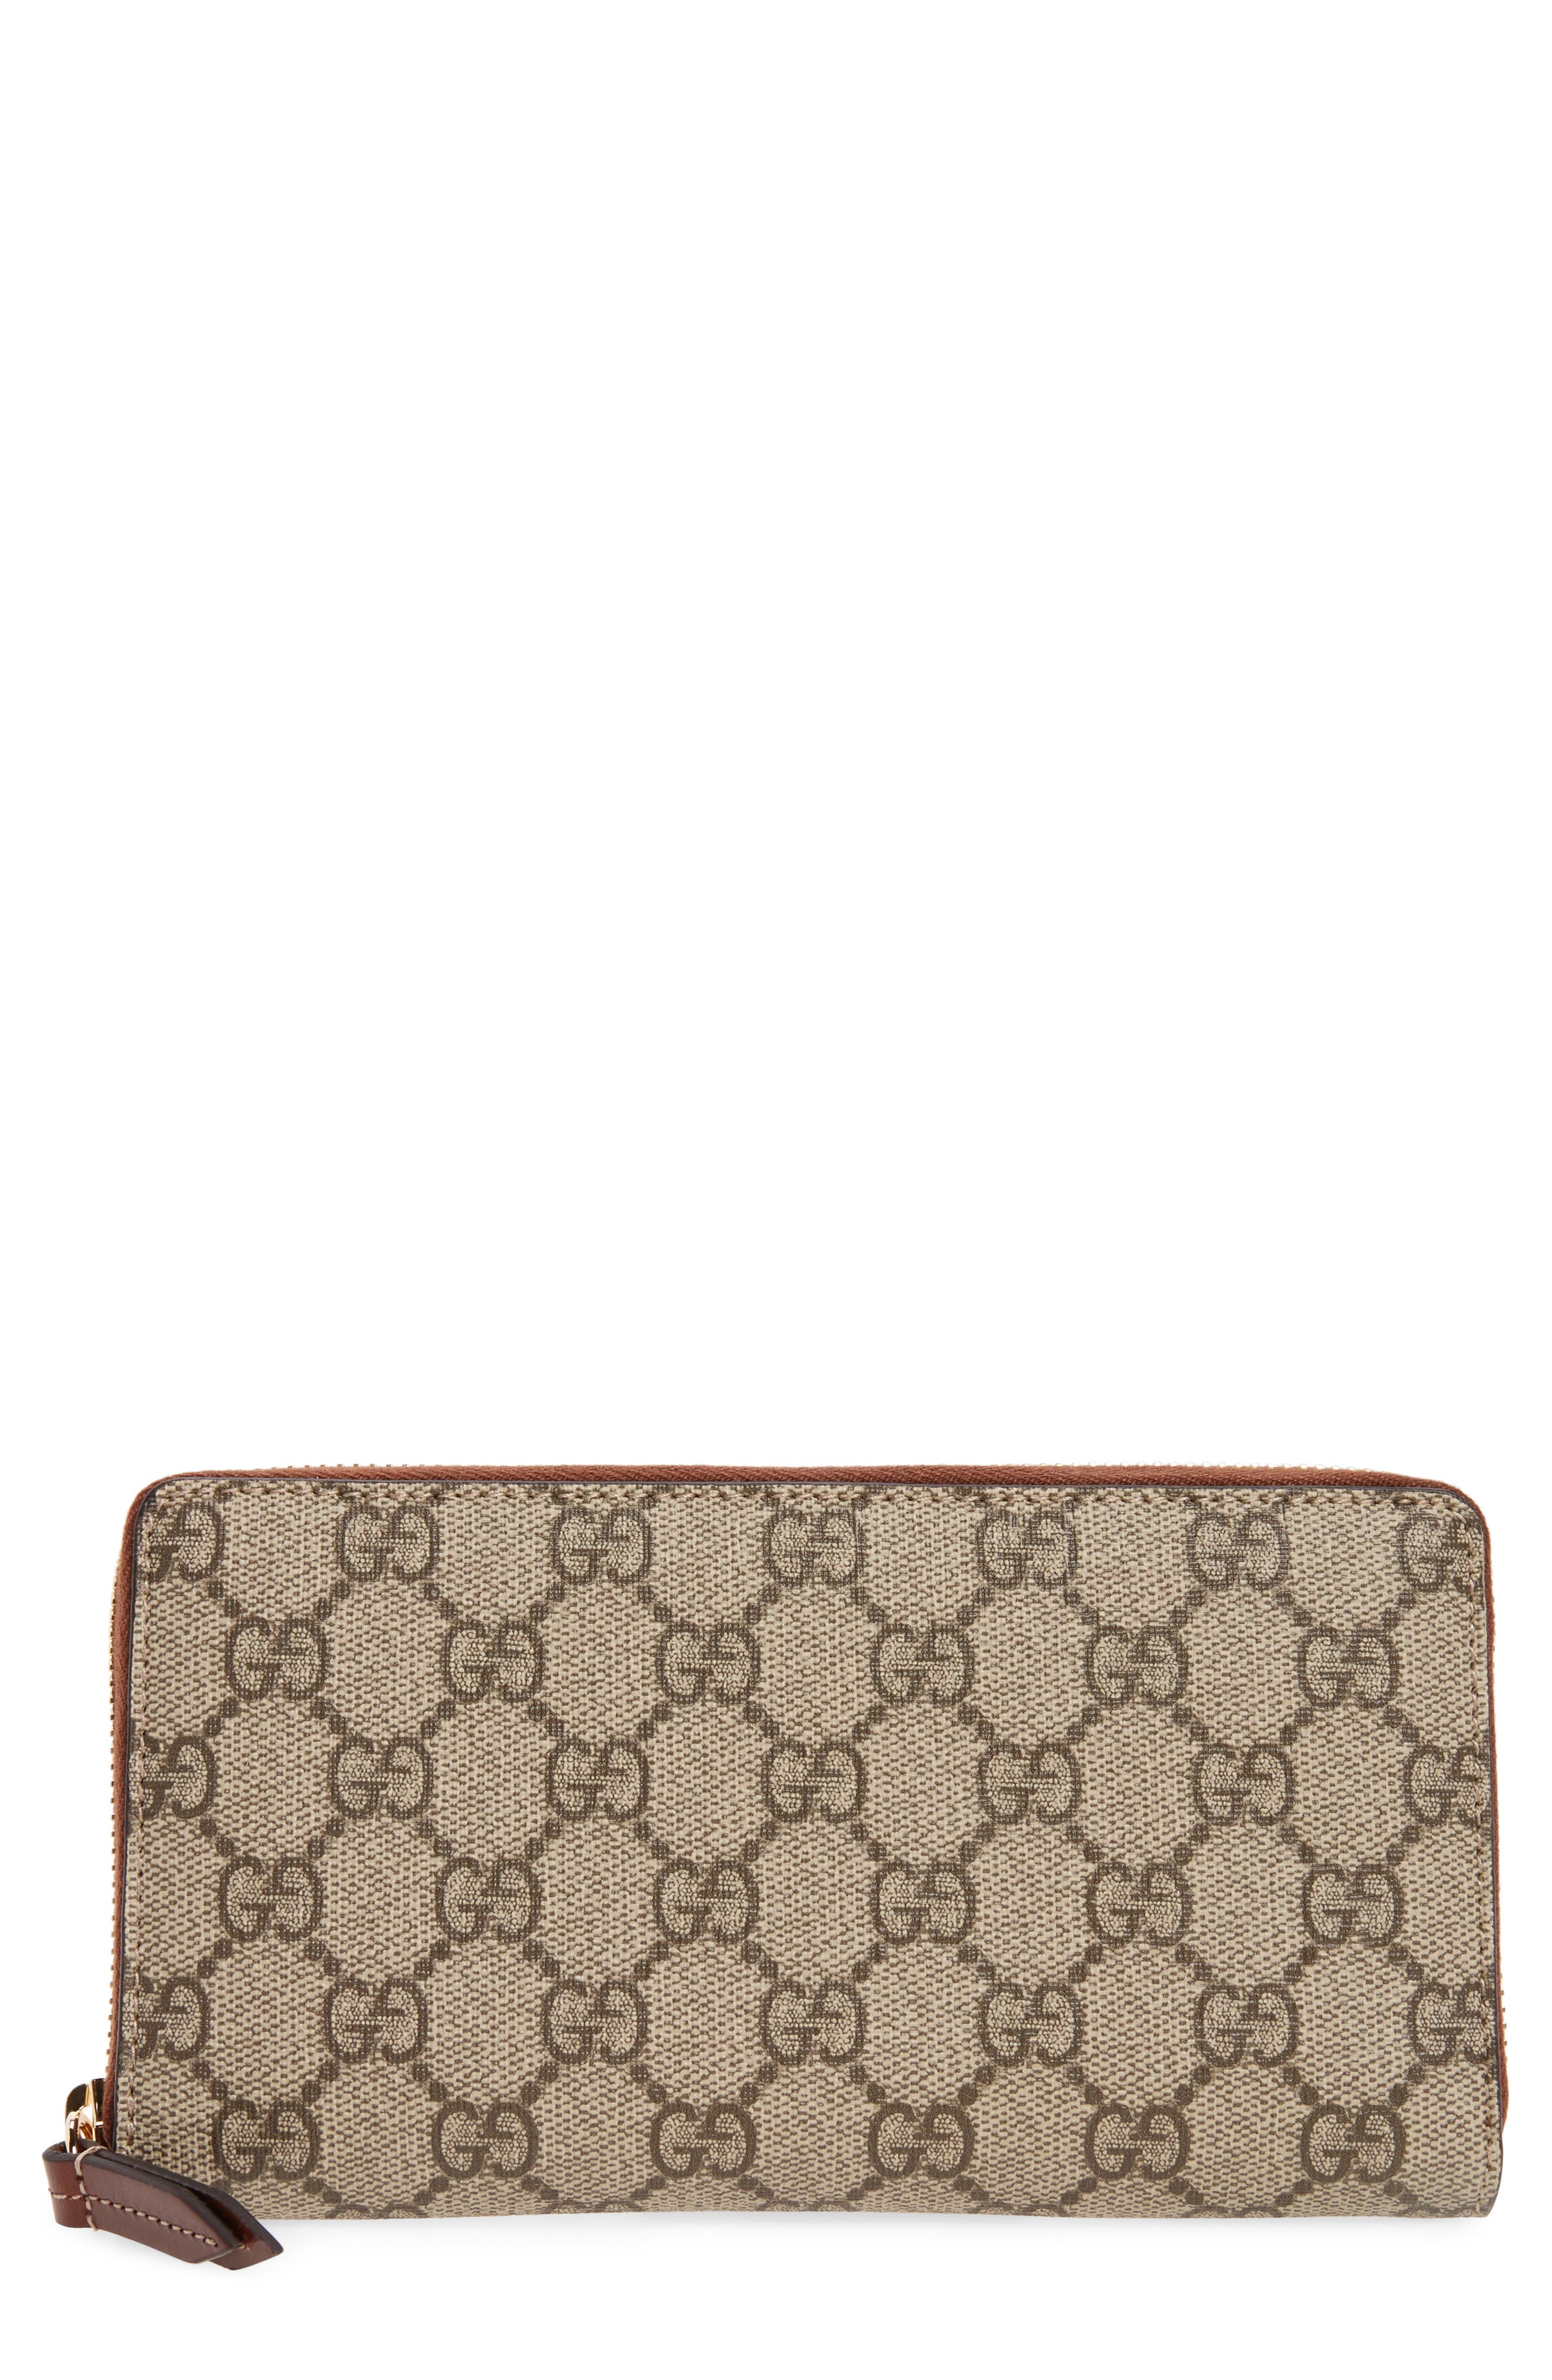 GG Supreme Zip Around Canvas Wallet,                             Main thumbnail 1, color,